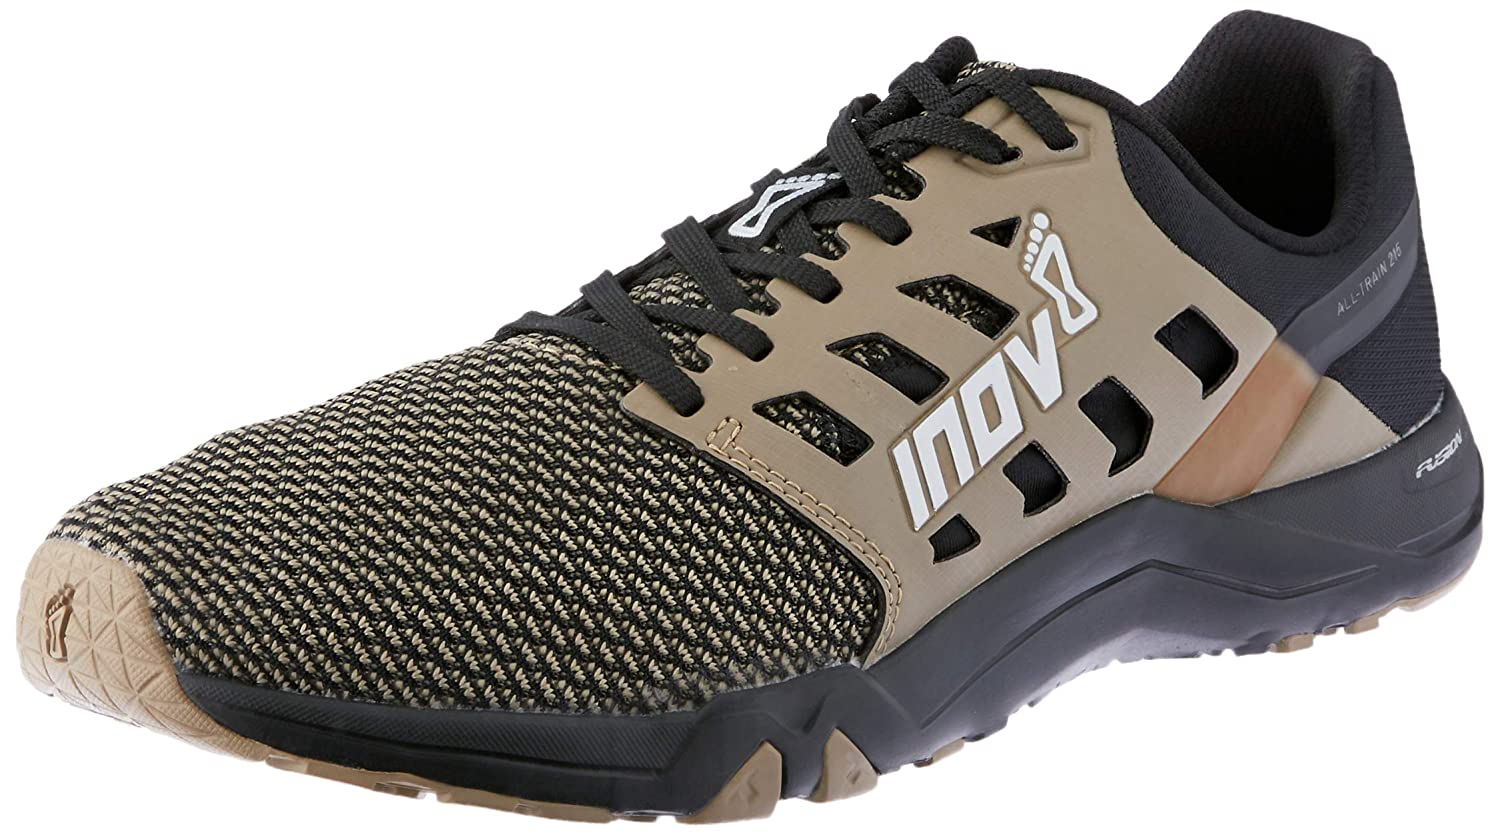 noir 50 EU Inov8 All Train 215 Knit Chaussure De Course à Pied